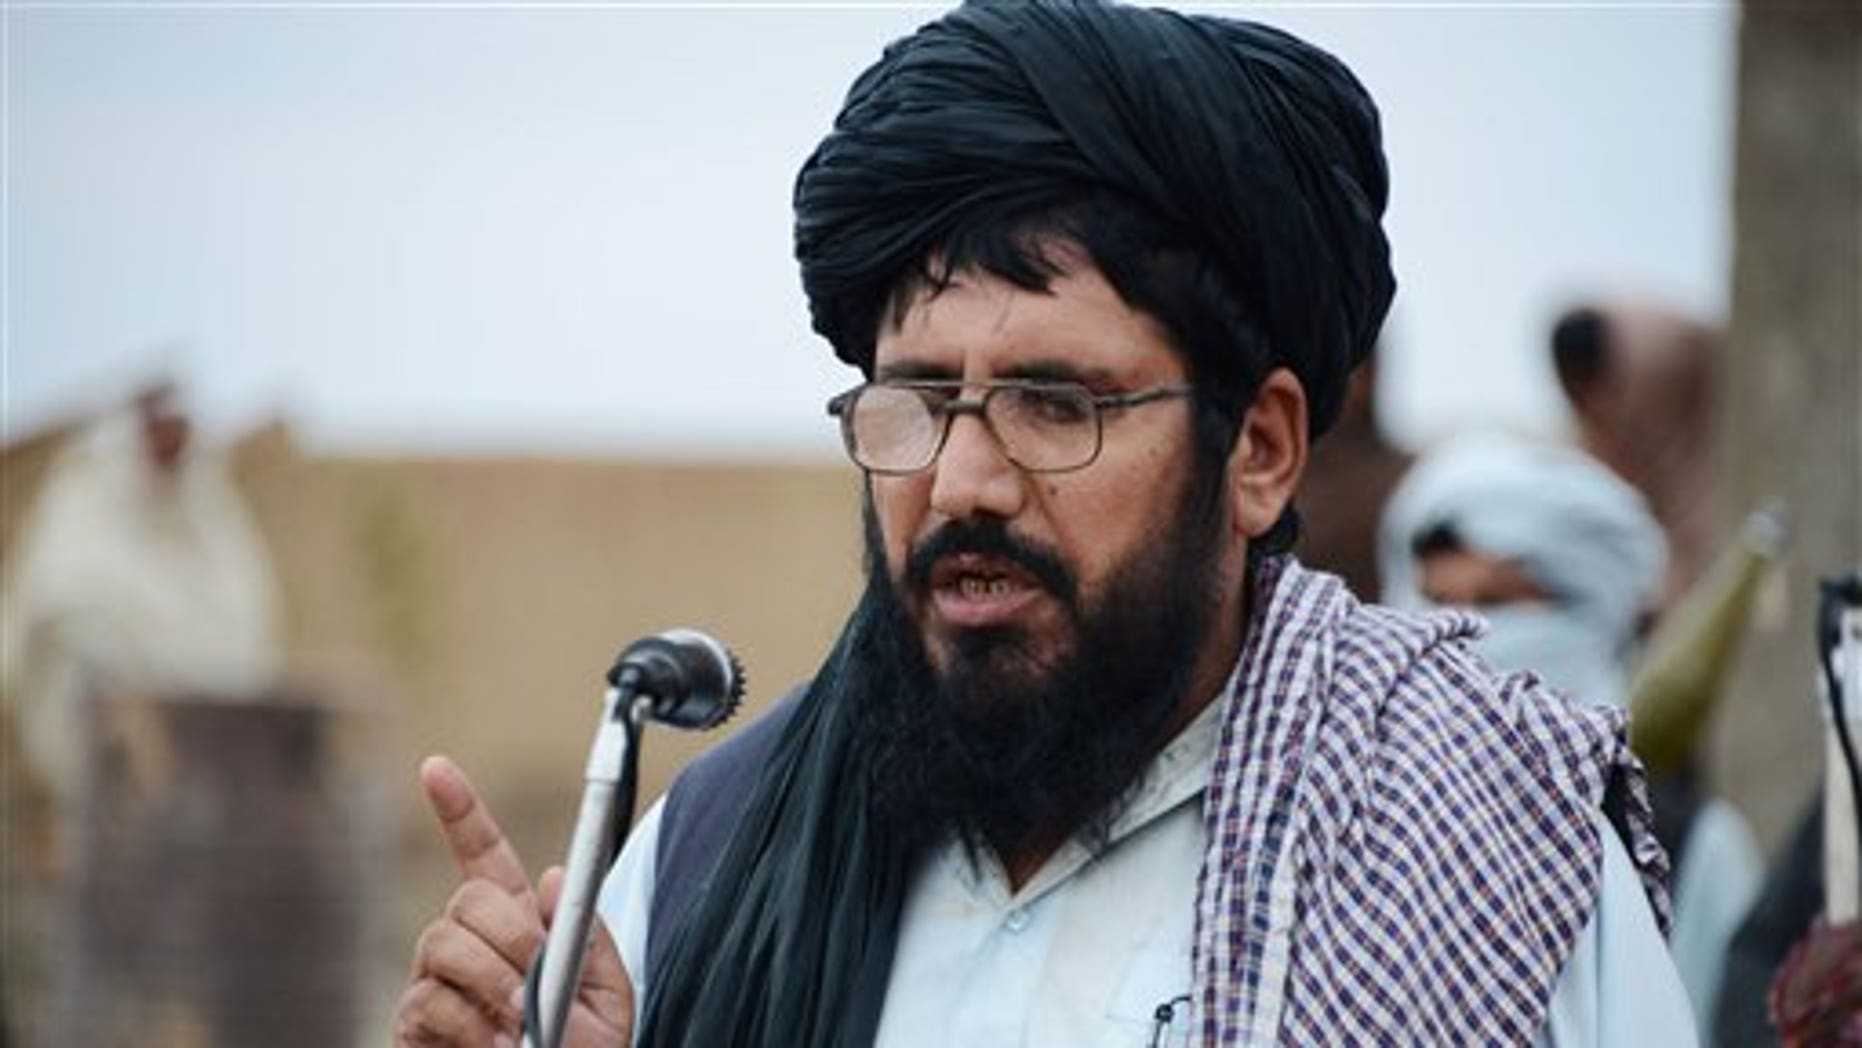 In this Tuesday, Nov. 3, 2015 photo,  Mullah Mohammed Rasool, the newly-elected leader of a breakaway faction of the Taliban speaks during a gathering in Farah province, Afghanistan. (AP Photo)